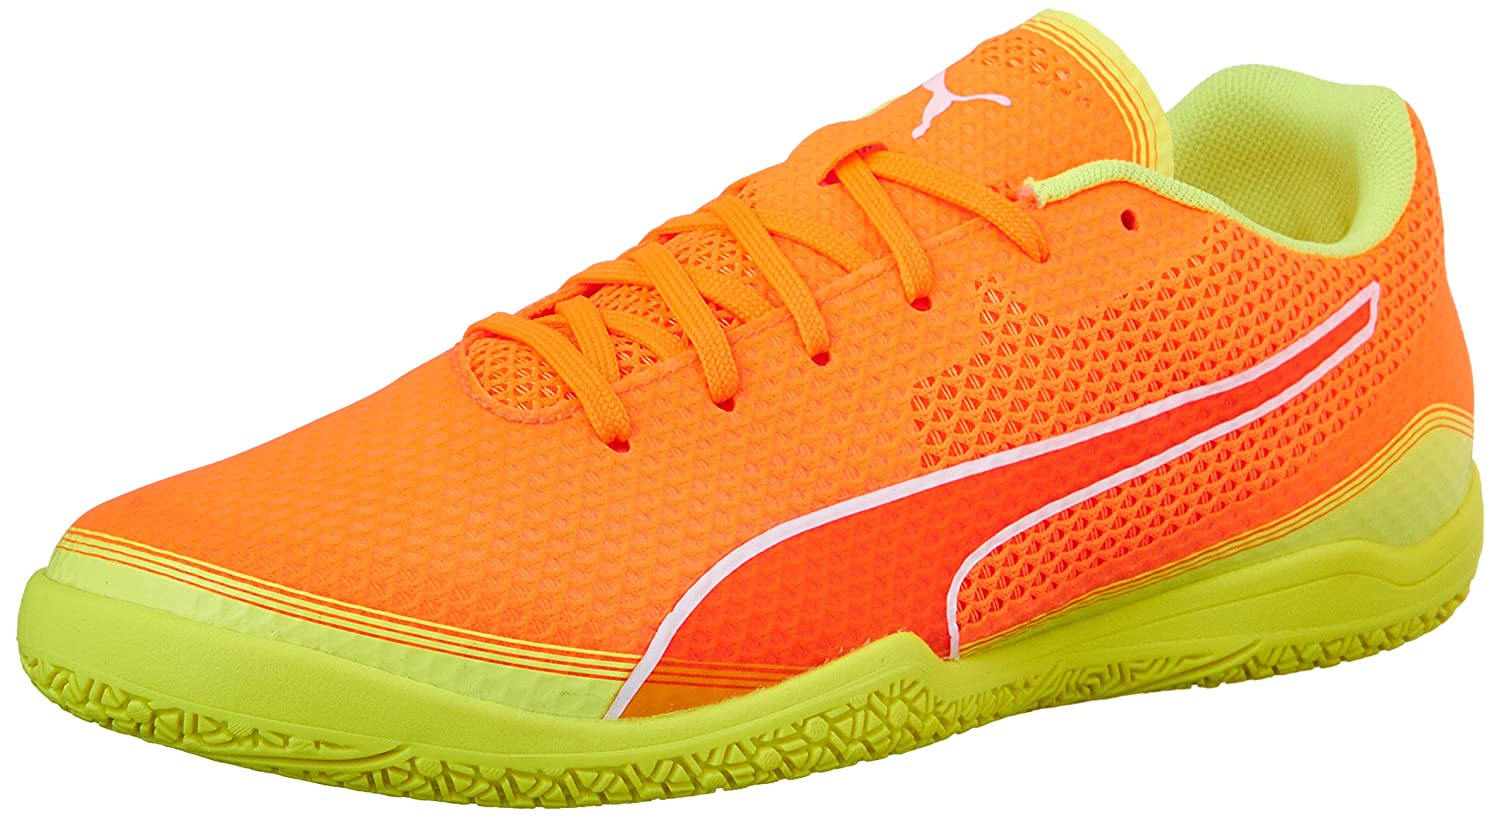 PUMA Men's Invicto Fresh Soccer Schuhe, Shocking Orange Weiß Safety Yellow, 7.5 M US